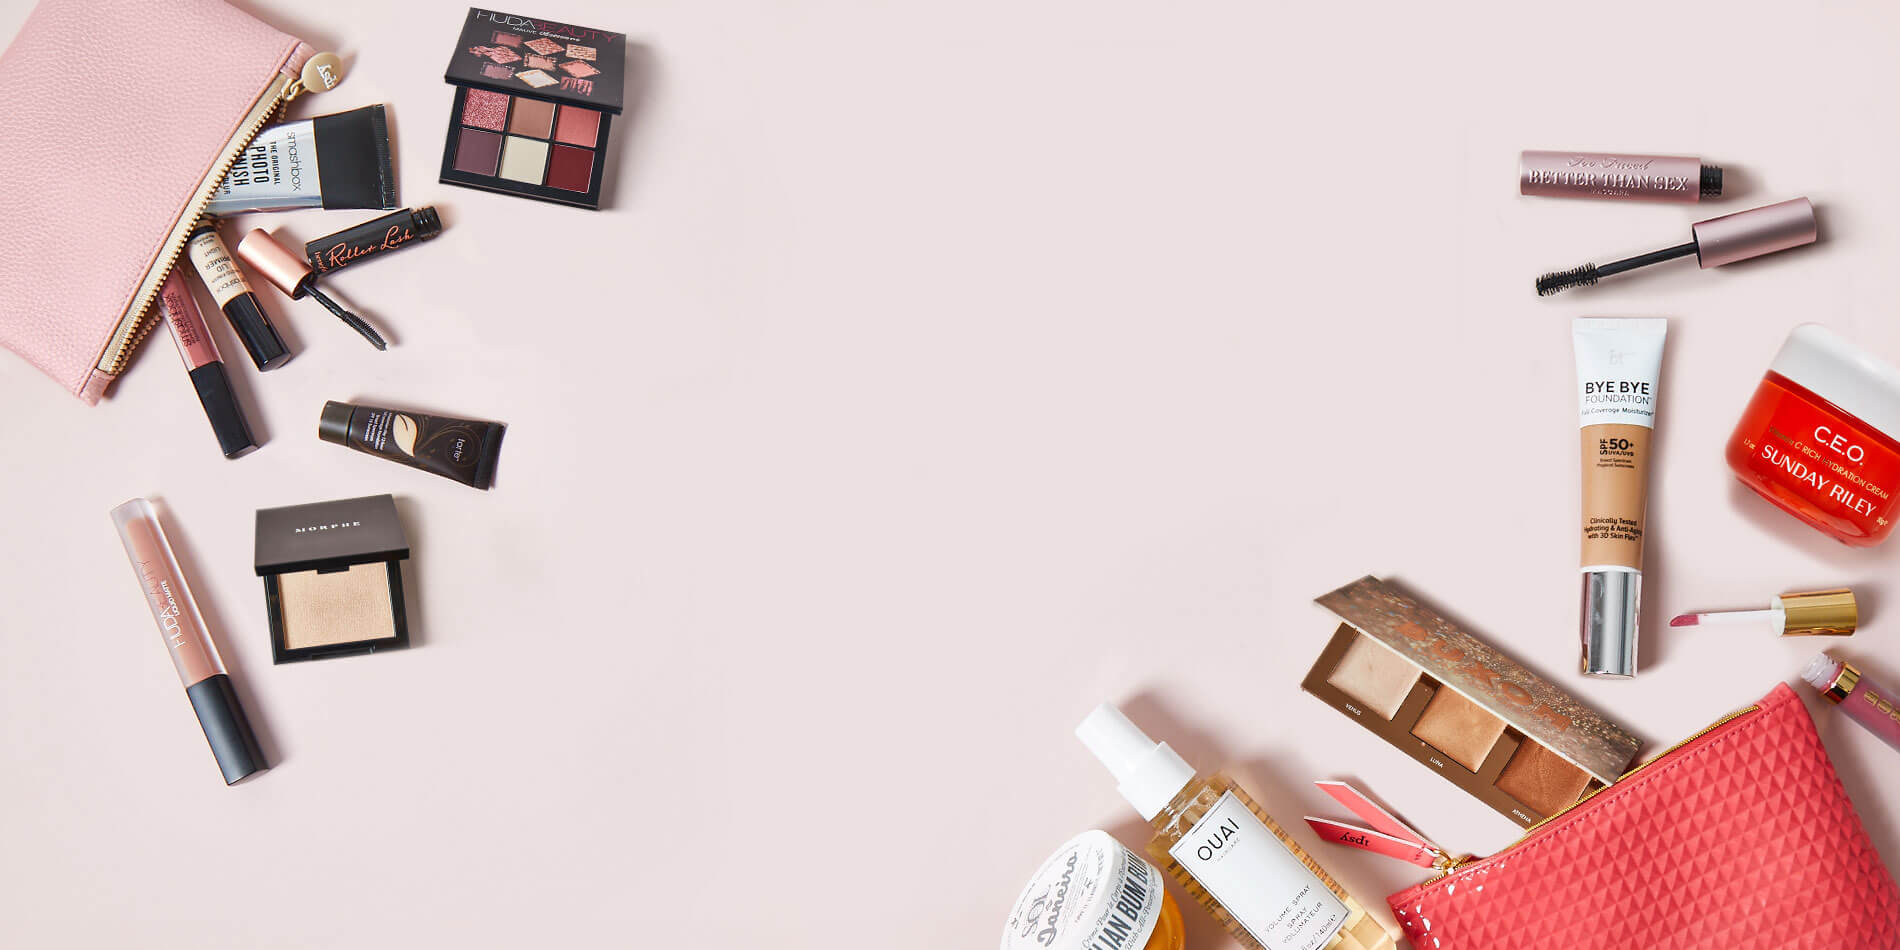 ipsy.com - YOUR PERSONALIZED BEAUTY SUBSCRIPTION